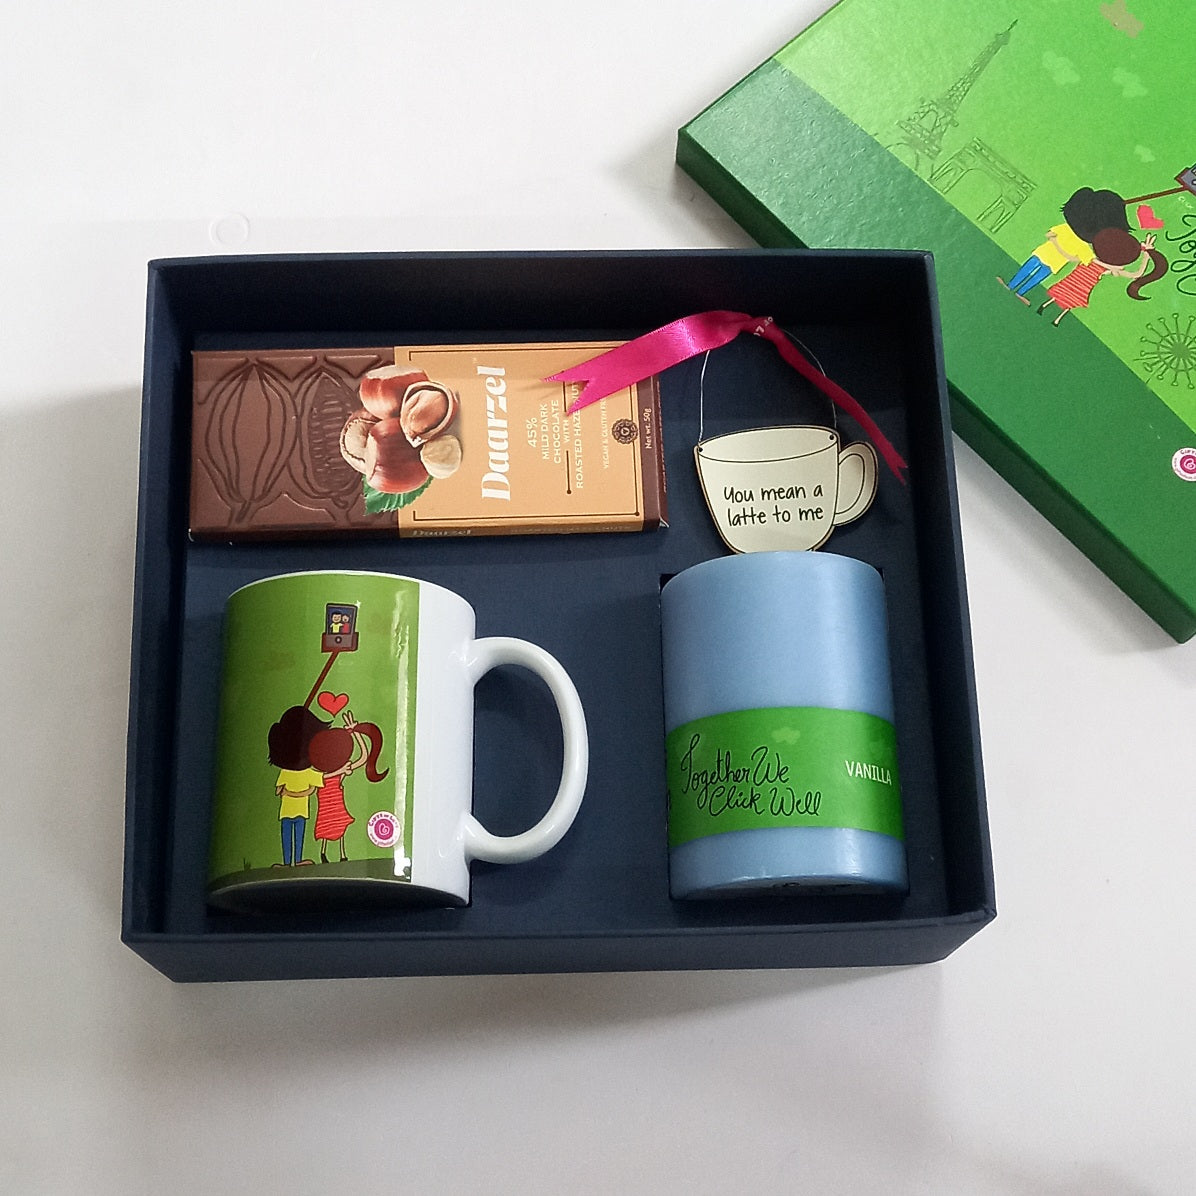 Share Your Love Gift Set | Together we Click Well